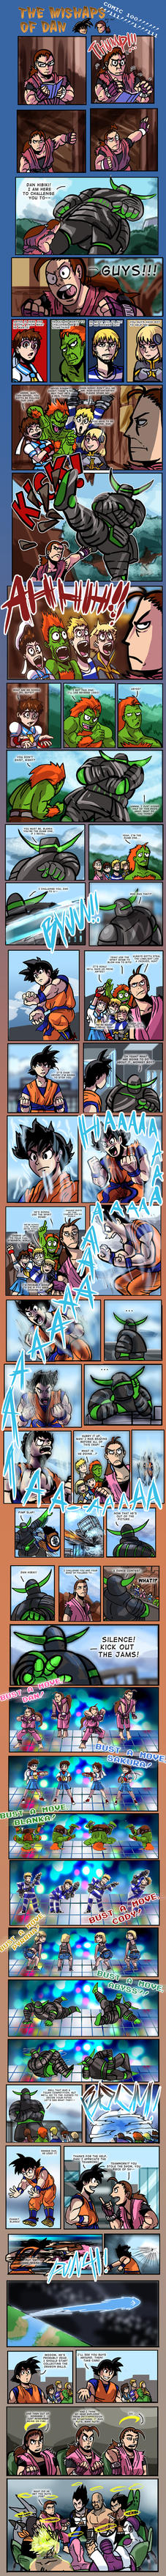 The Mishaps of Dan 100: The Super Comic!!!! by timberking